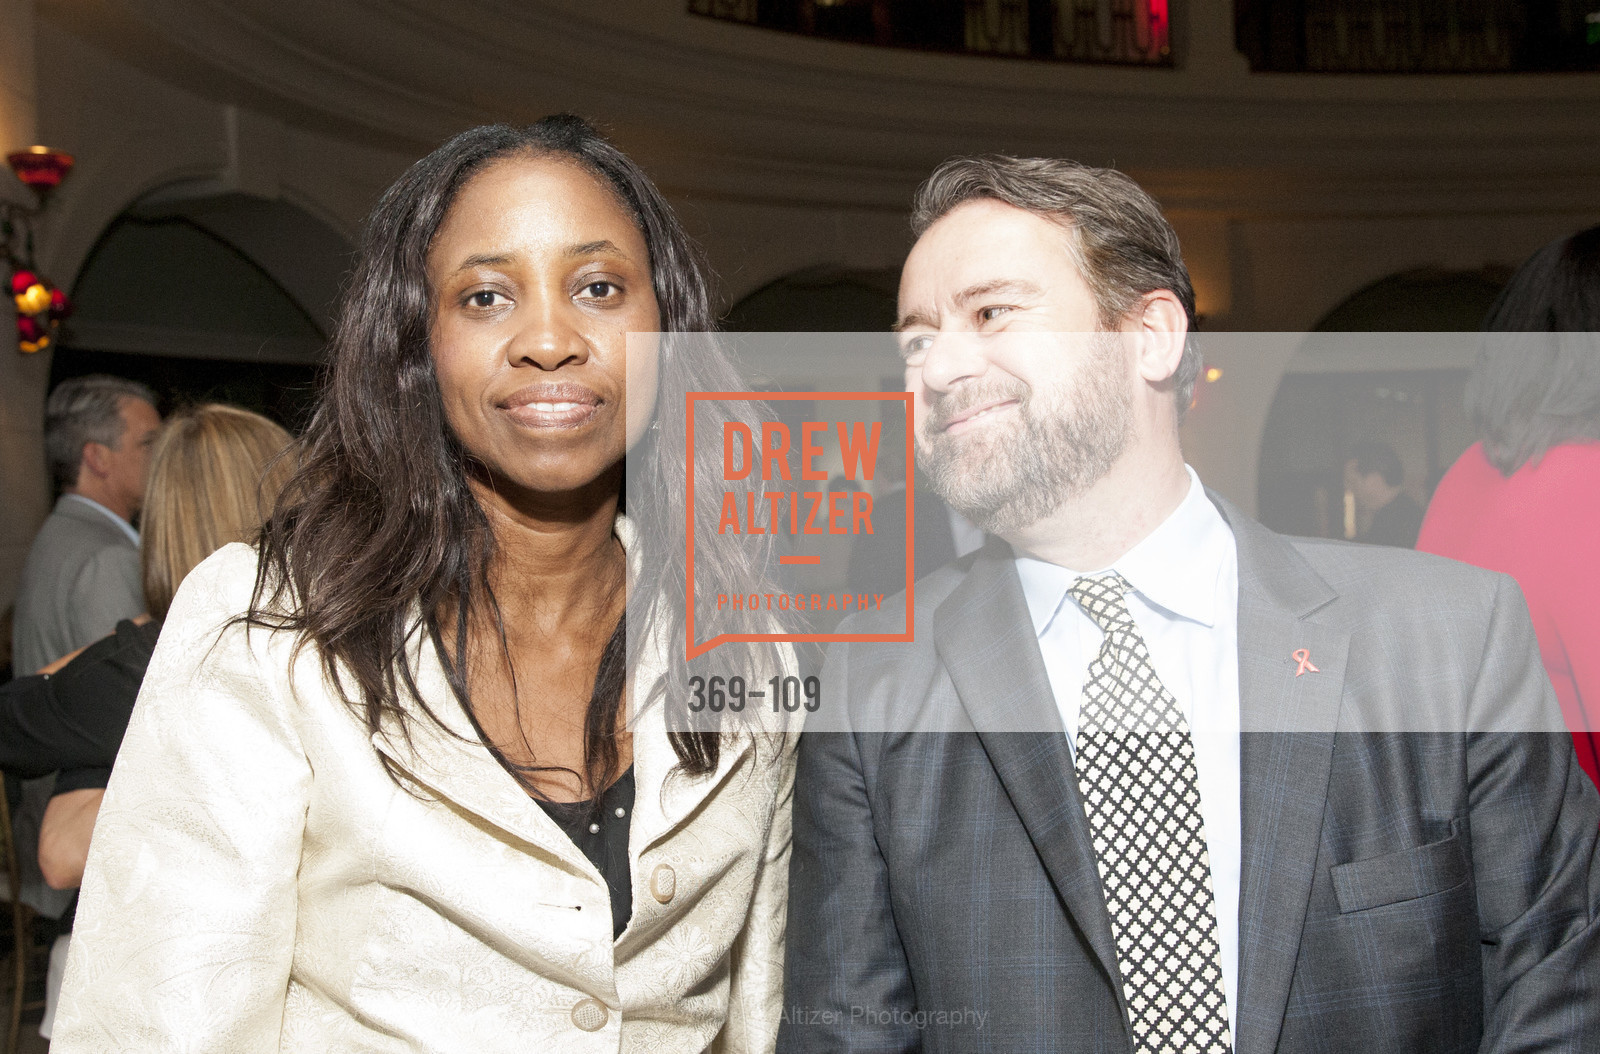 TsiTsi Appollo, Ben Plumley, PANGAEA GLOBAL HEALTH Leadership Dinner at Rotunda in Oakland, The Rotunda. Oakland, May 11th, 2015,Drew Altizer, Drew Altizer Photography, full-service agency, private events, San Francisco photographer, photographer california